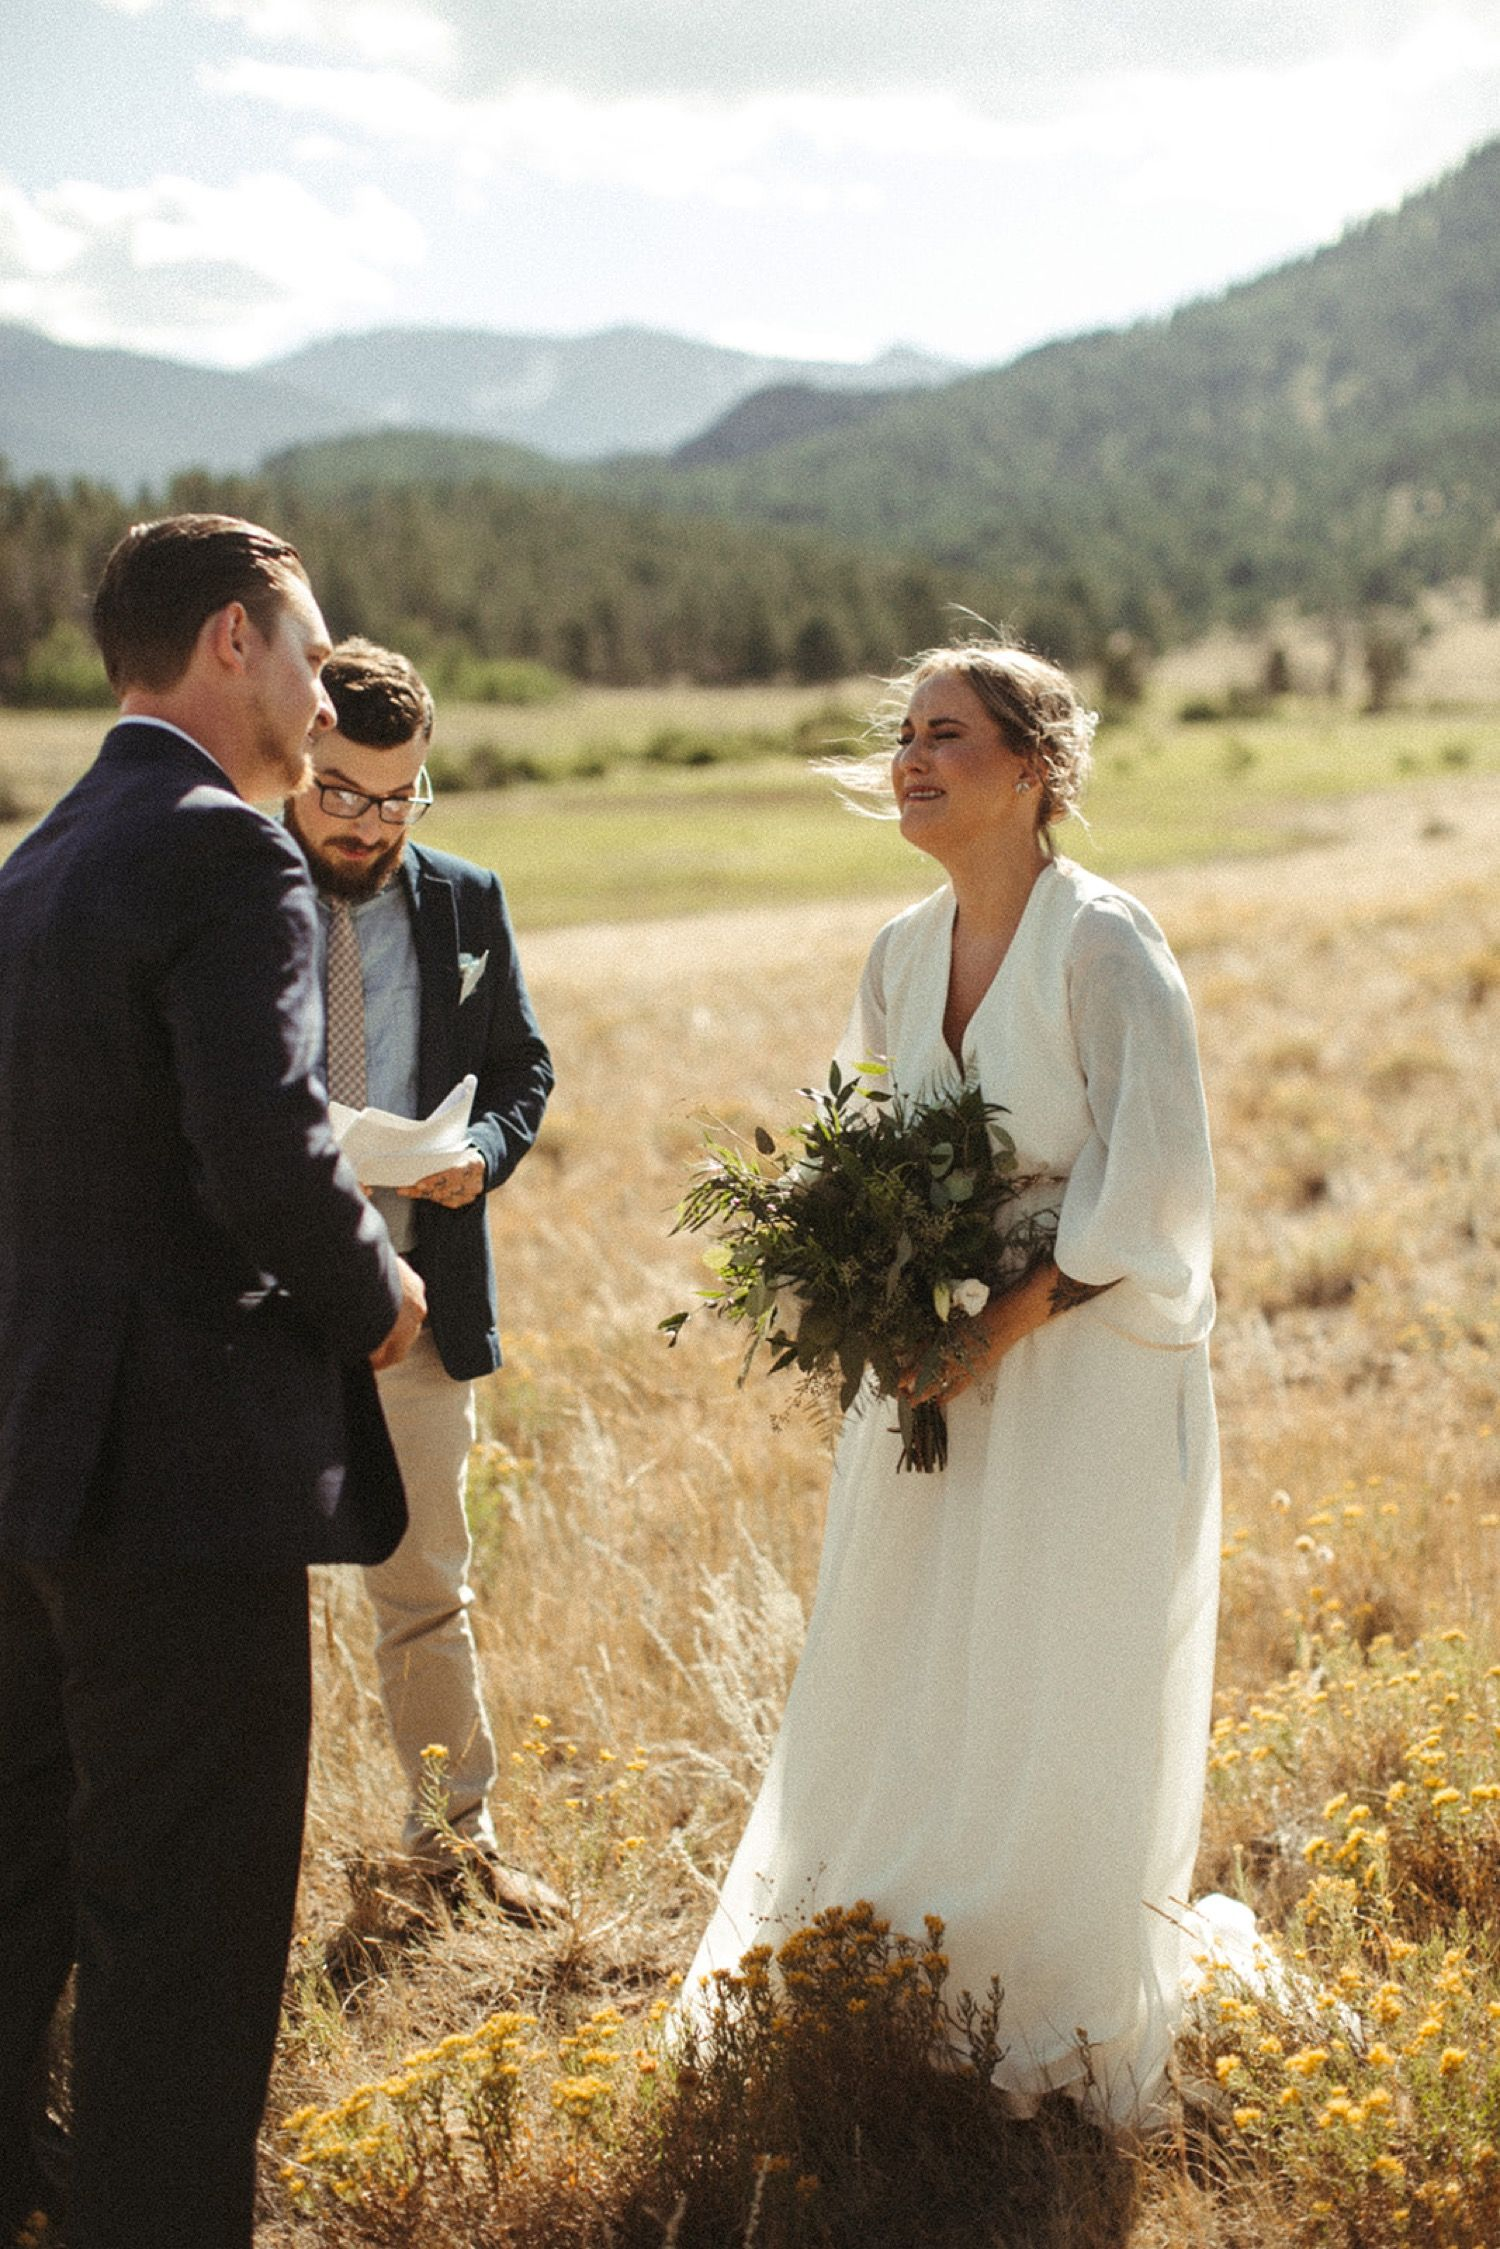 Intimate Elopement In The Rocky Mountains By From The Daisies From The Daisies In 2020 Wedding Photography Inspiration Elopement Inspiration Elopement